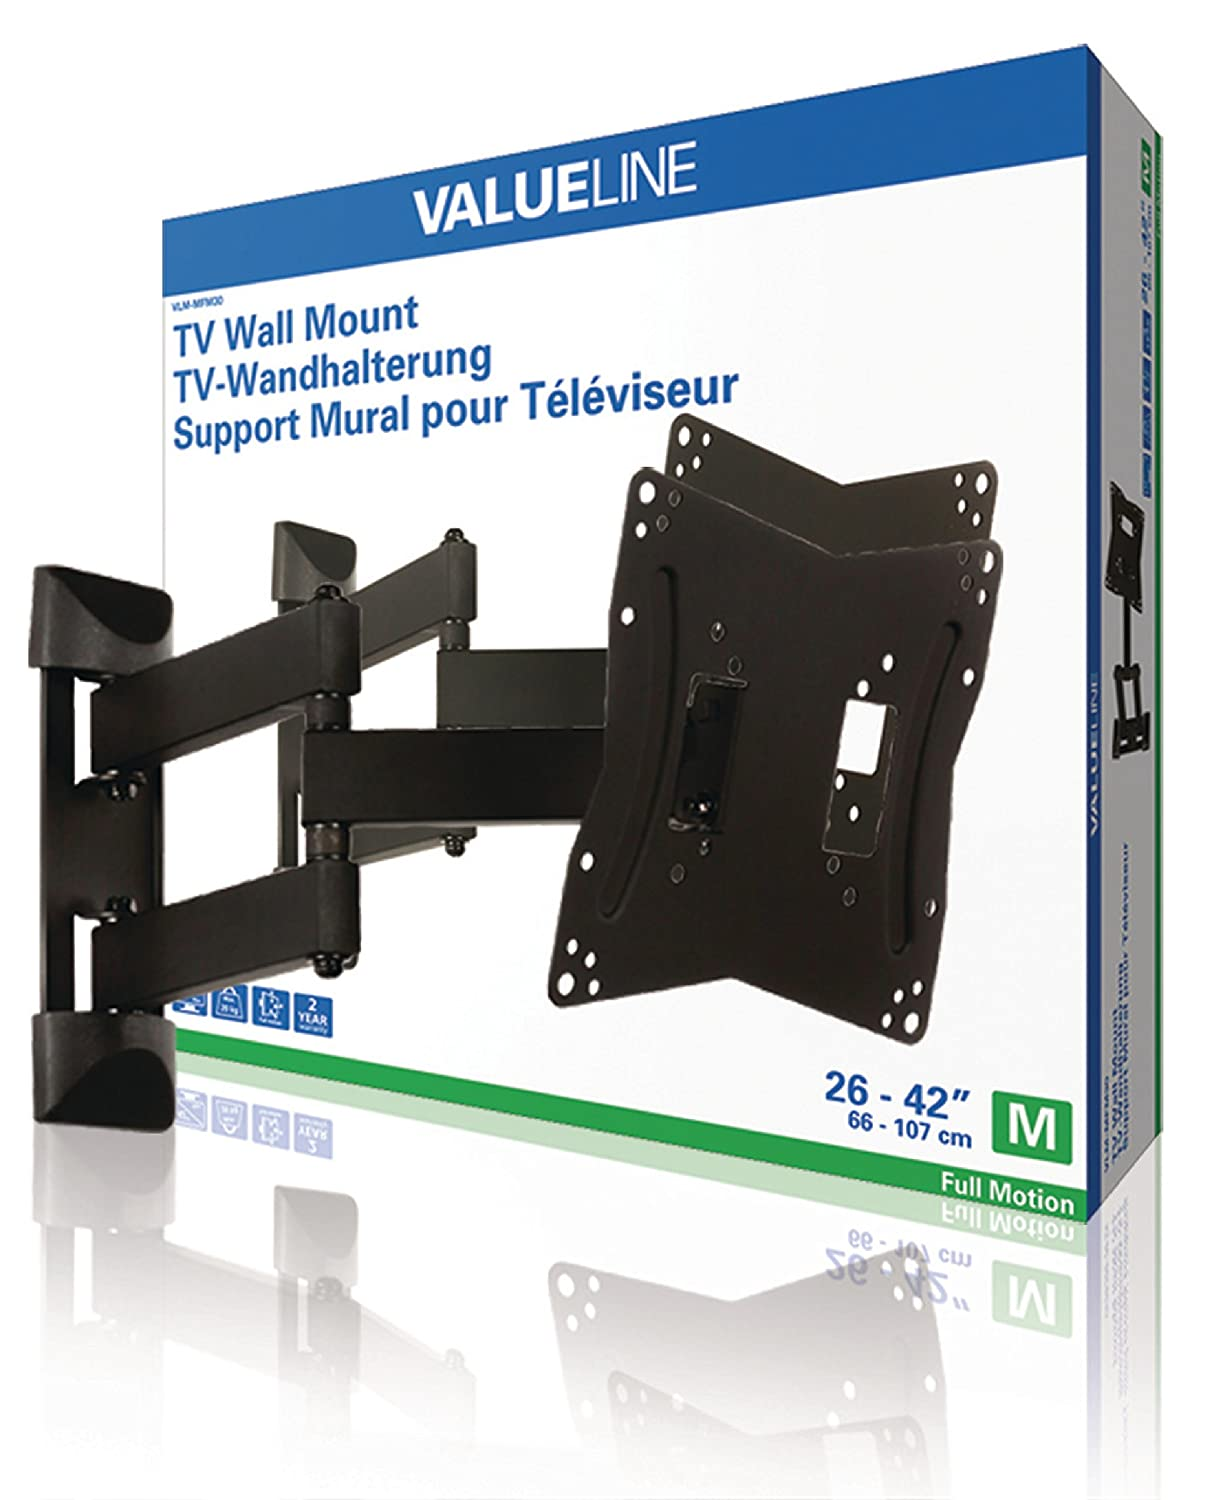 Amazon.com: Valueline TV Wall Mount Full Motion 26   42u0027u0027/66   107 Cm 20 Kg  [VLM MFM30]: Home Audio U0026 Theater